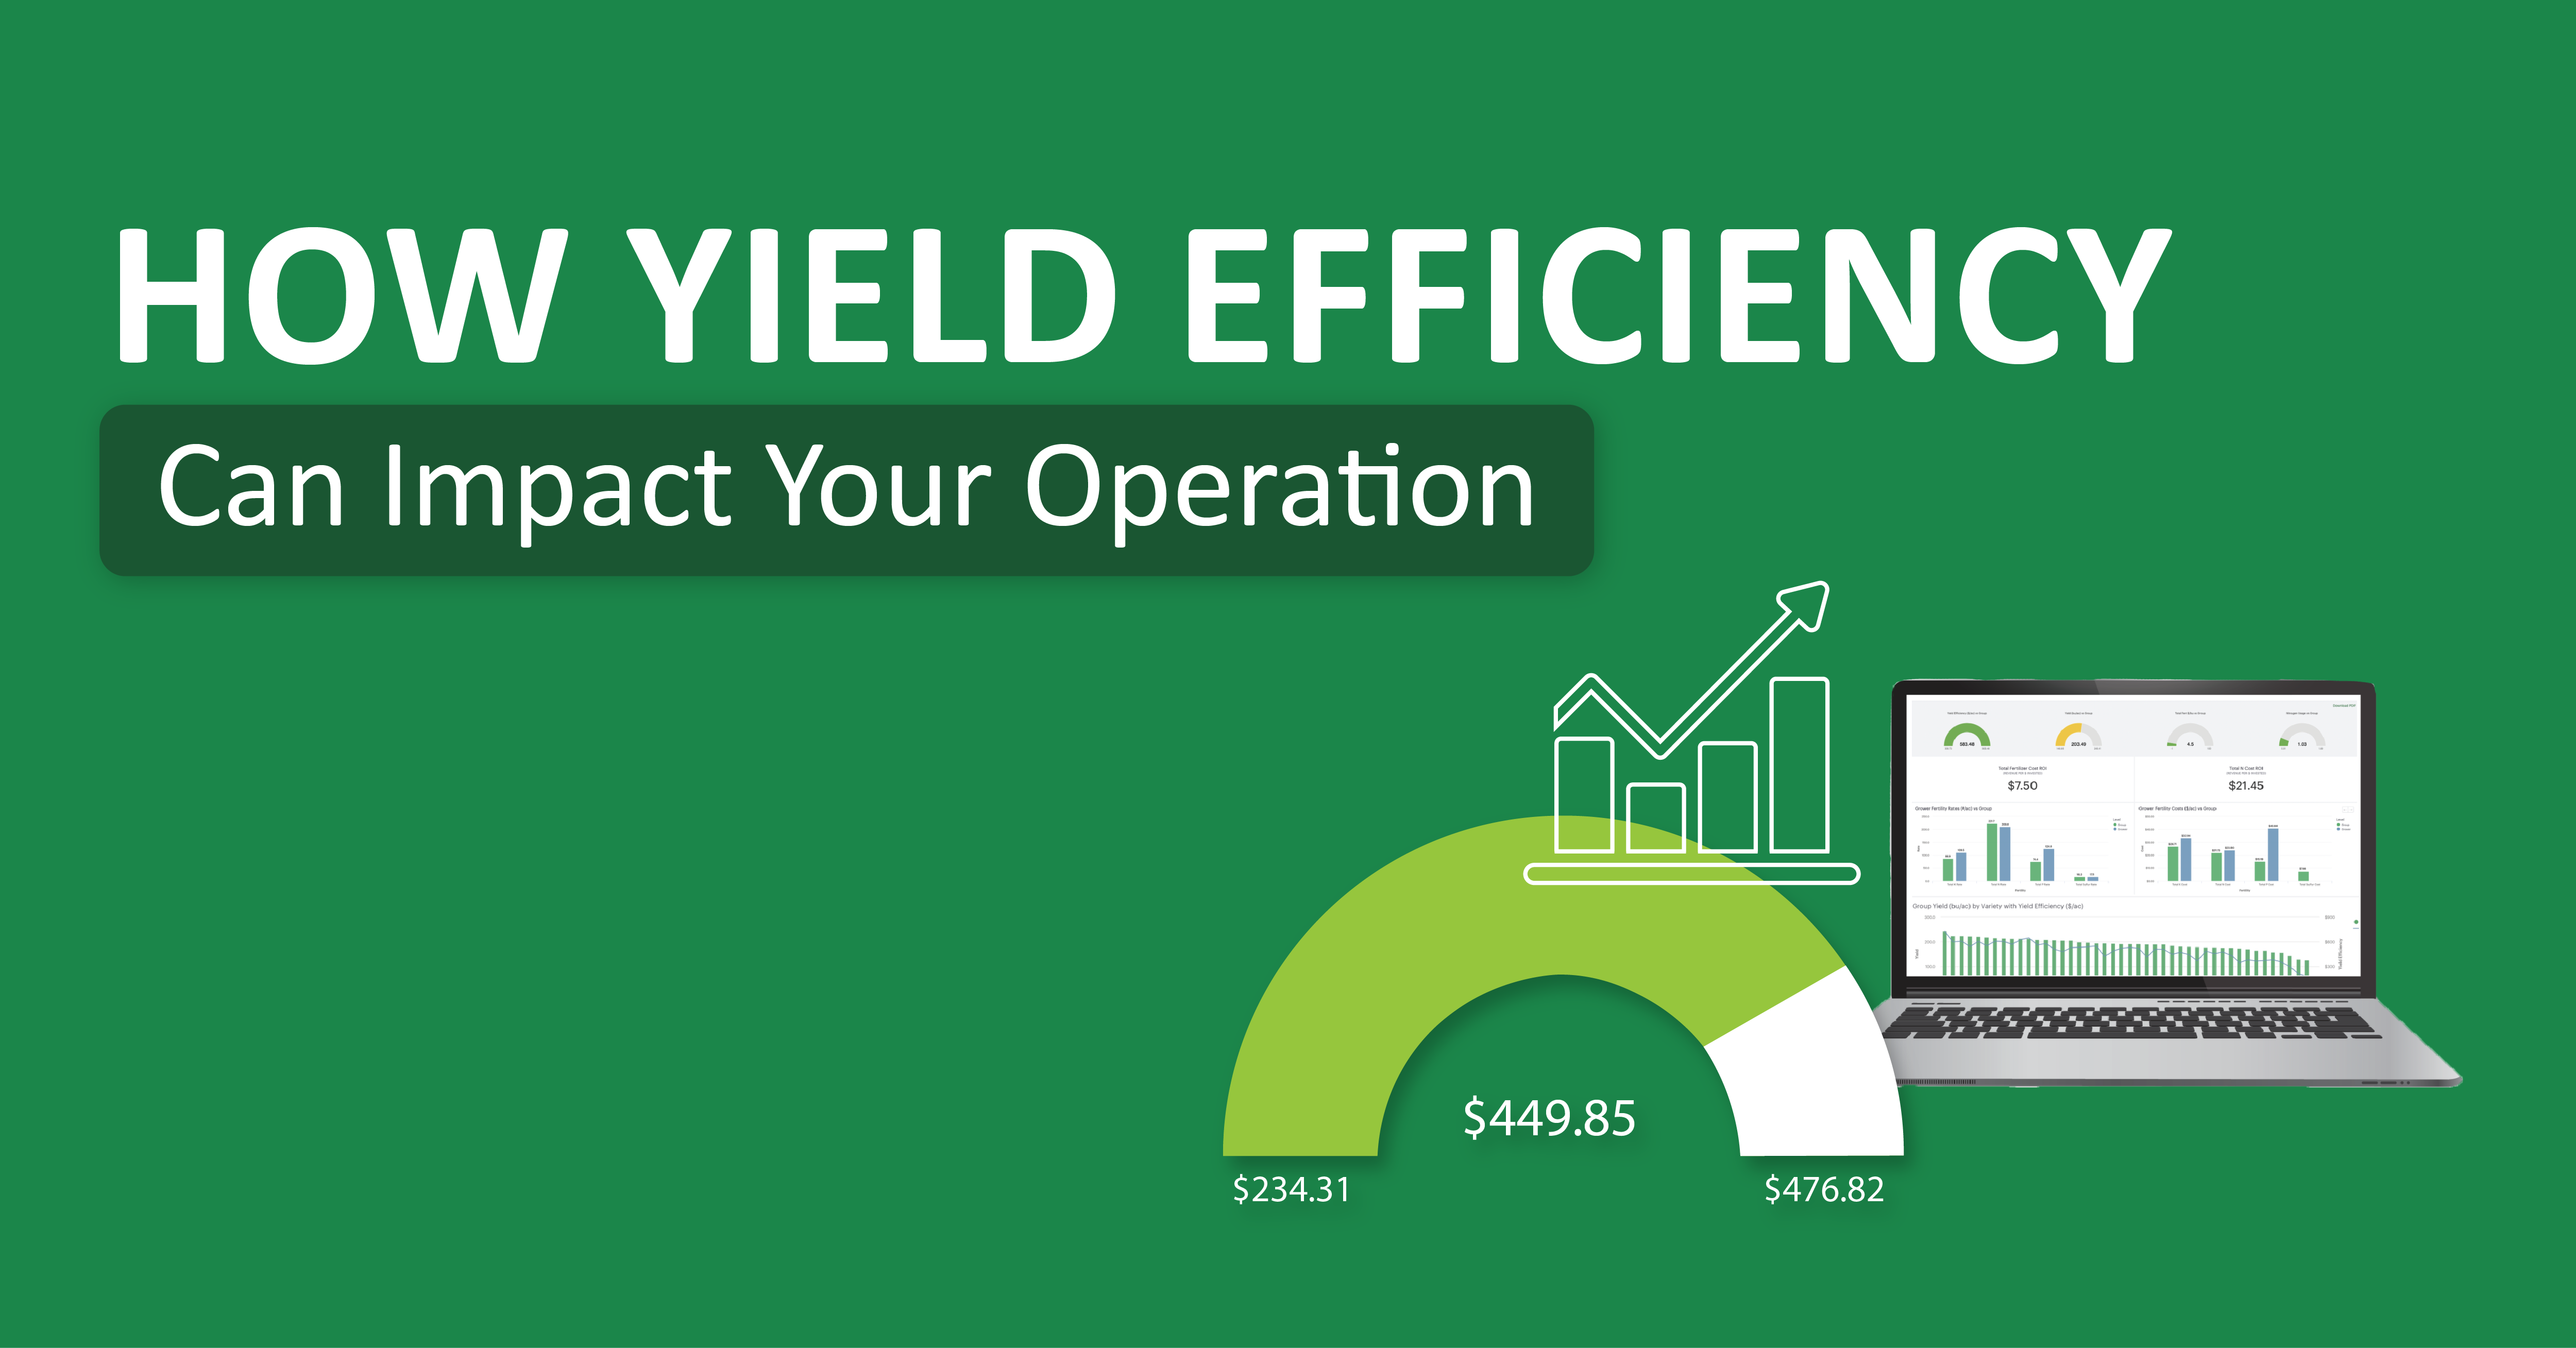 How Yield Efficiency Can Impact Your Operation